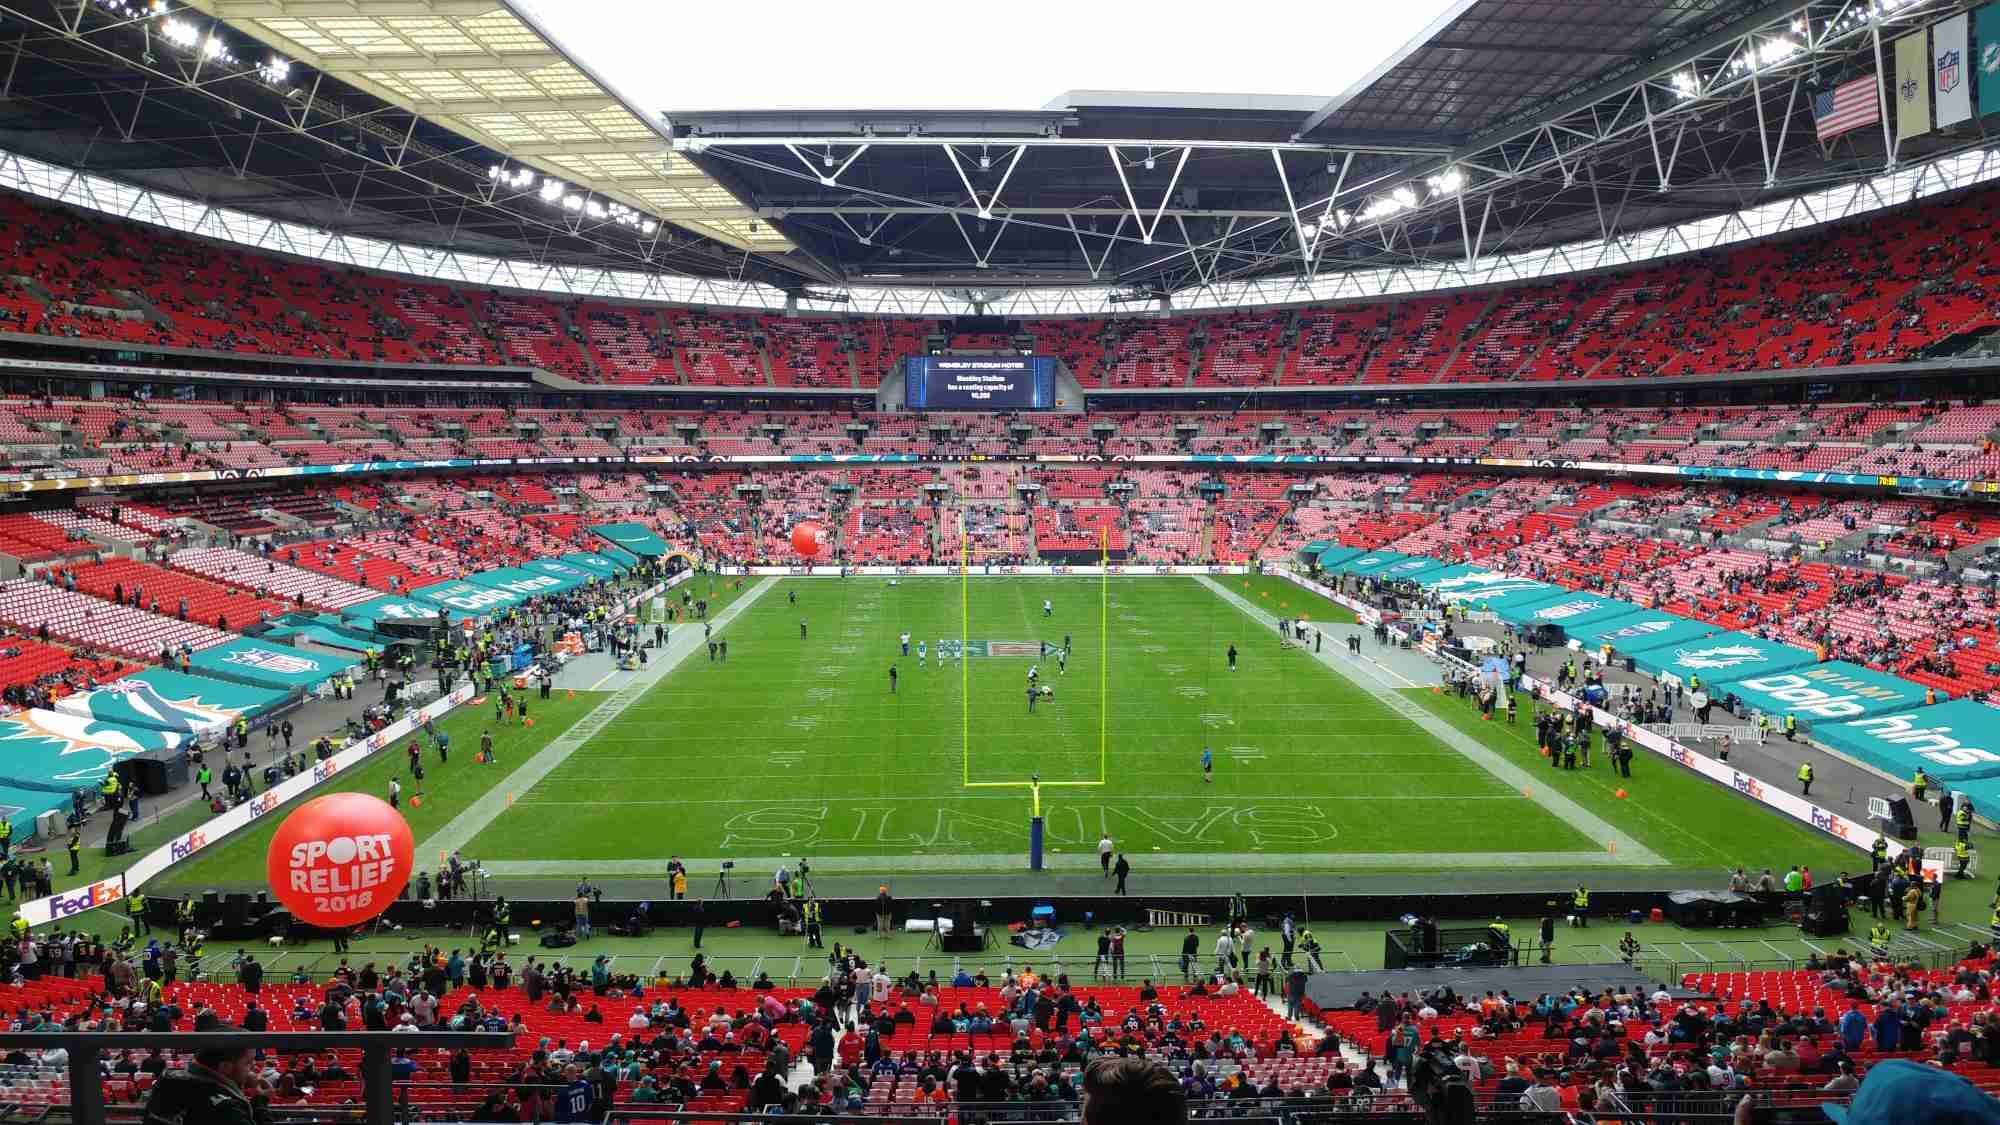 View from Seat Block 240 at Wembley Stadium